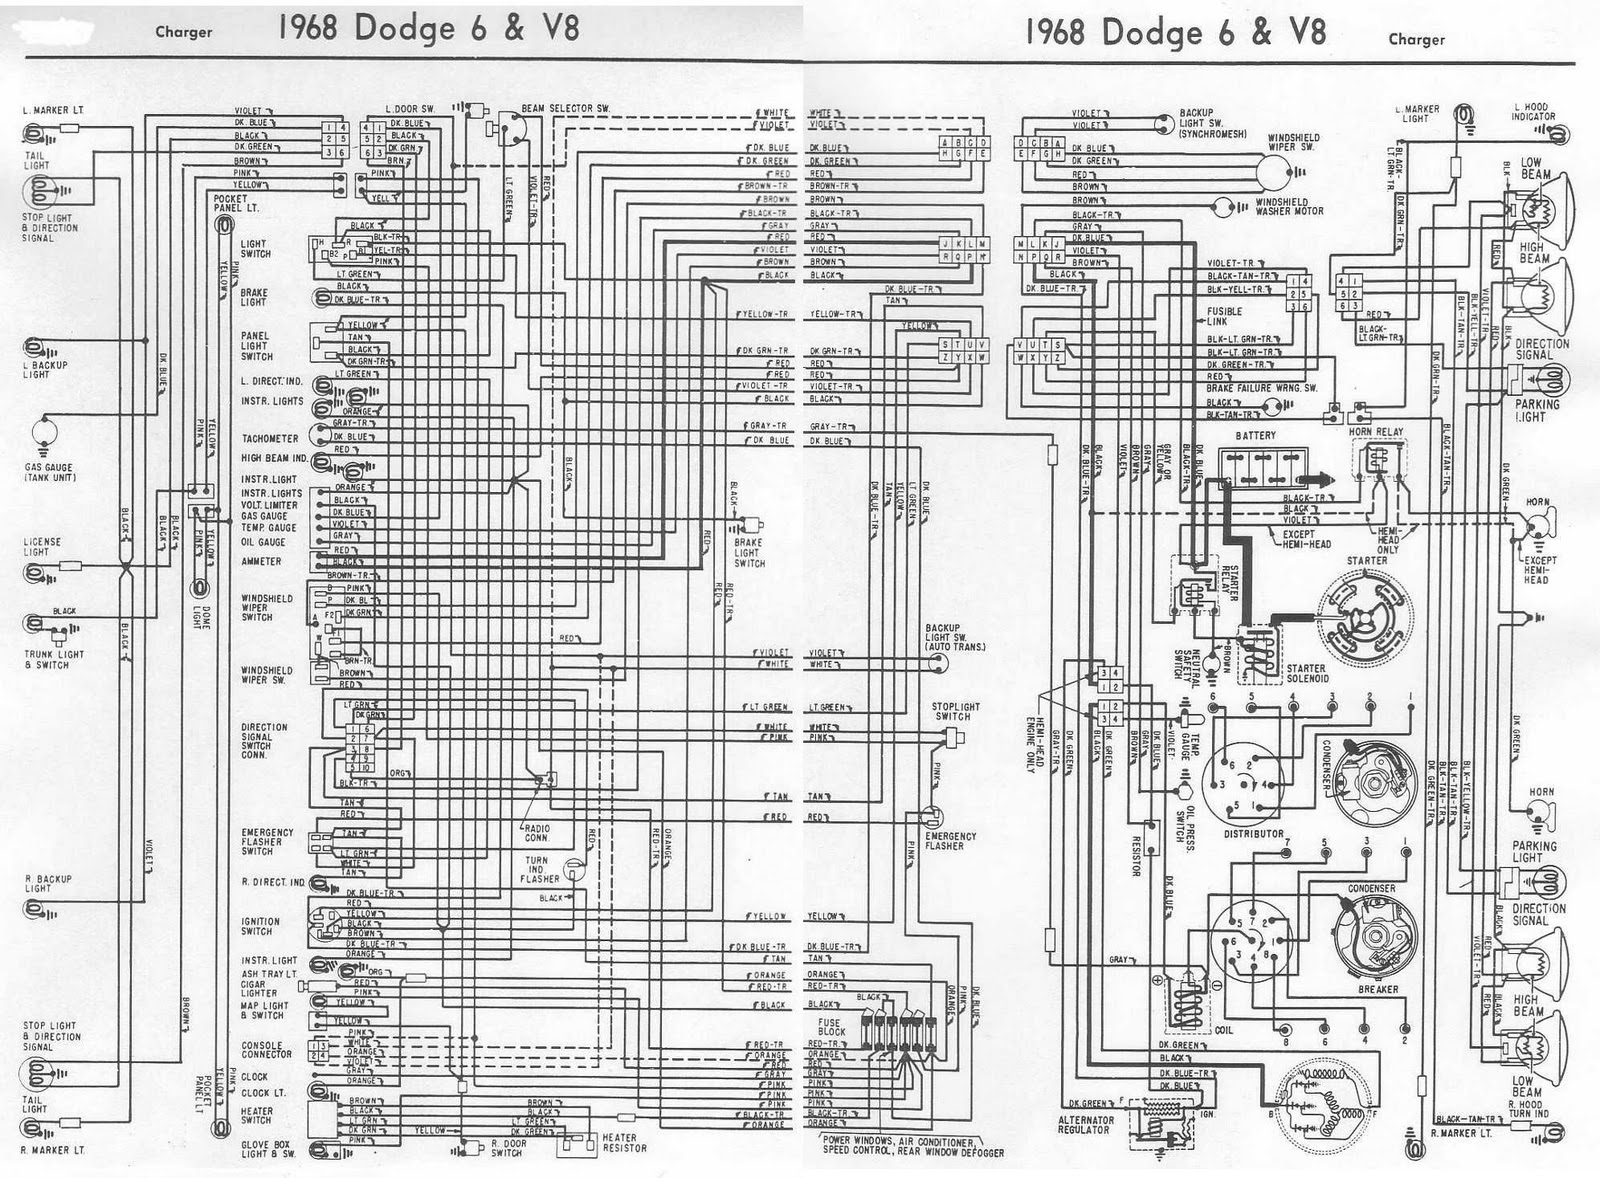 1964 dodge polara wiring diagram wiring diagram third level rh 4 13 14 jacobwinterstein com 1962 dodge polara 1964 dodge polara interior [ 1600 x 1178 Pixel ]